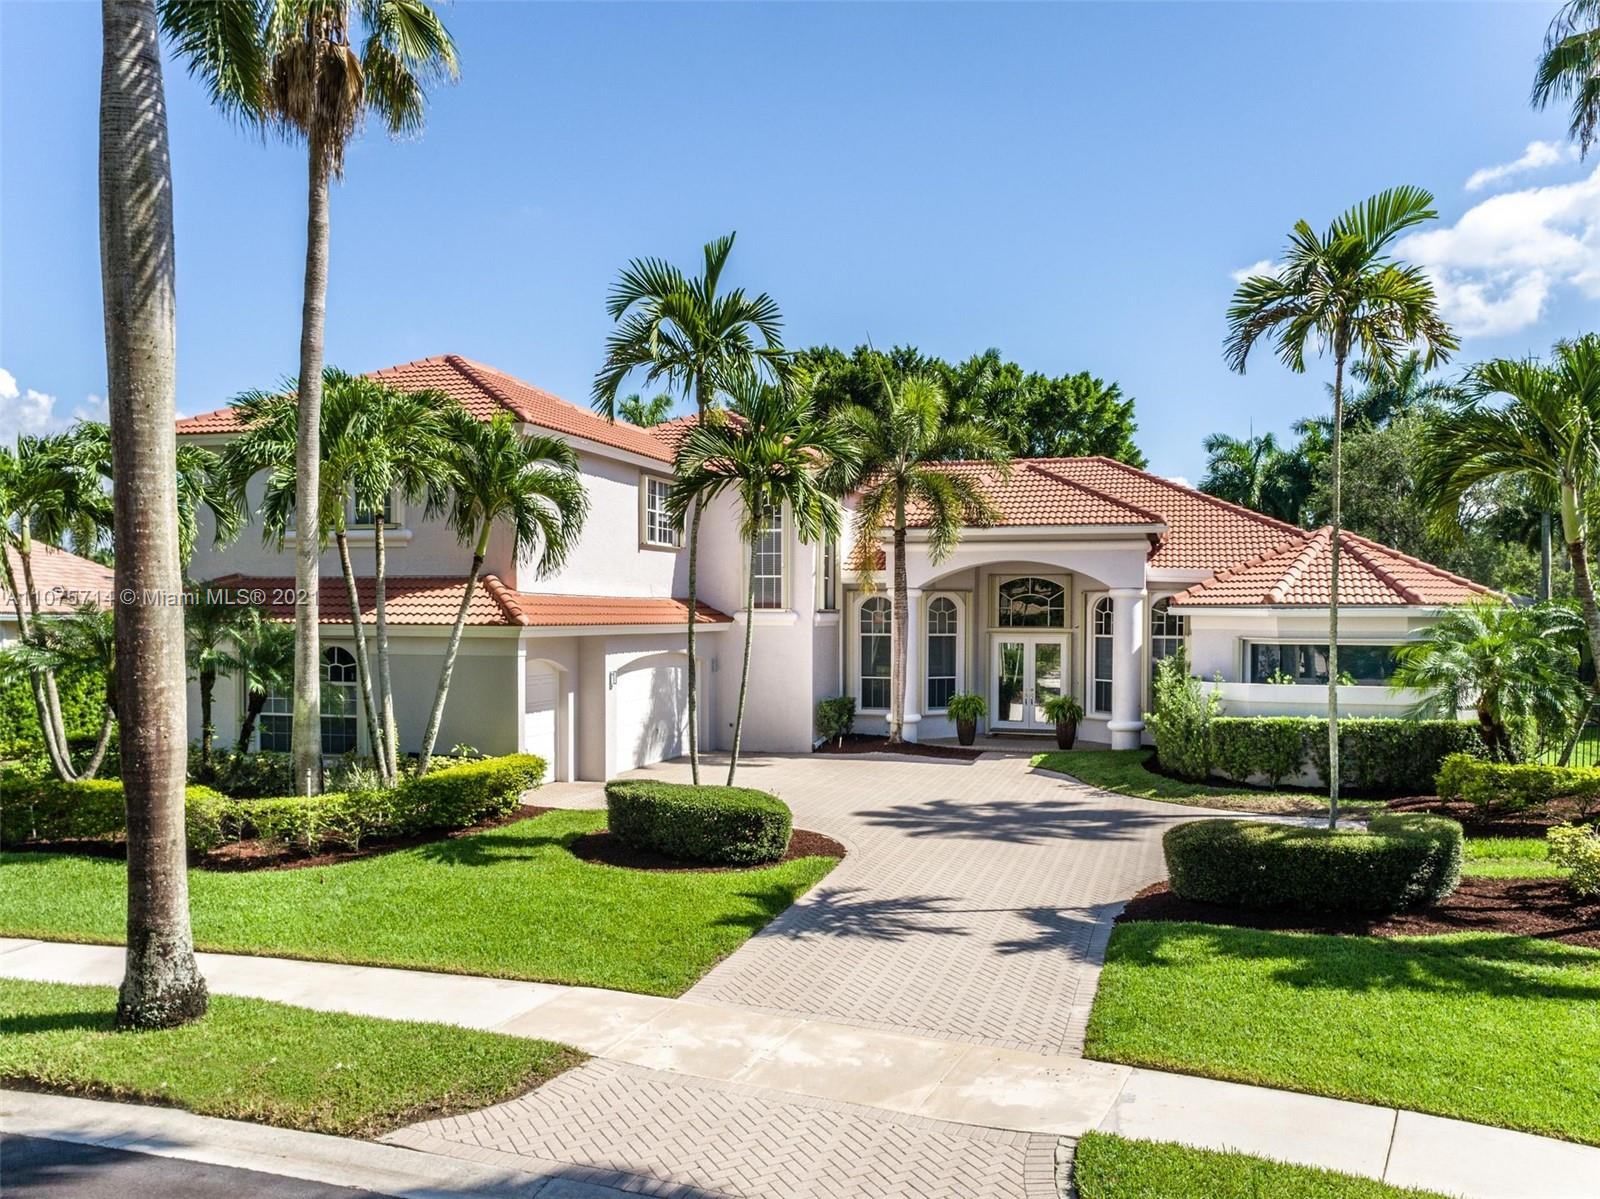 GOLF,GOLF,GOLF..This Exquisite 5,507 SF. Home Rests On a Lot of Approximate half an acre. It Features 5 En-Suite Bedrooms, 5.5 Deluxe Remodeled Bathrooms & An Upscale New Kitchen (2019). The Master Bedroom & its Sumptuous Spa-Inspired Master Bath Is Located In Ground Floor & A Second/Guest Bedroom. Richly-appointed spaces include modern office, a 2021 Bar/living Entertainment Area With A Glass Wine Cellar (400 bottles) & New appliances. Italian Tiles 32x32 & Laminate floors. New Roof 2019. The Spacious Breakfast Area Overlooks The Fully Fenced Backyard & Recently Resurfaced Pool (2021). Enjoy 4-Hole Golf Verdant Surroundings while BBQing in the Built-in Summer Kitchen. Accordion Shutters Throughout, 3 New AC (2019), Ample Driveway, 3-Car garage. BRAND NEW HOME in Weston Hills Country Club!